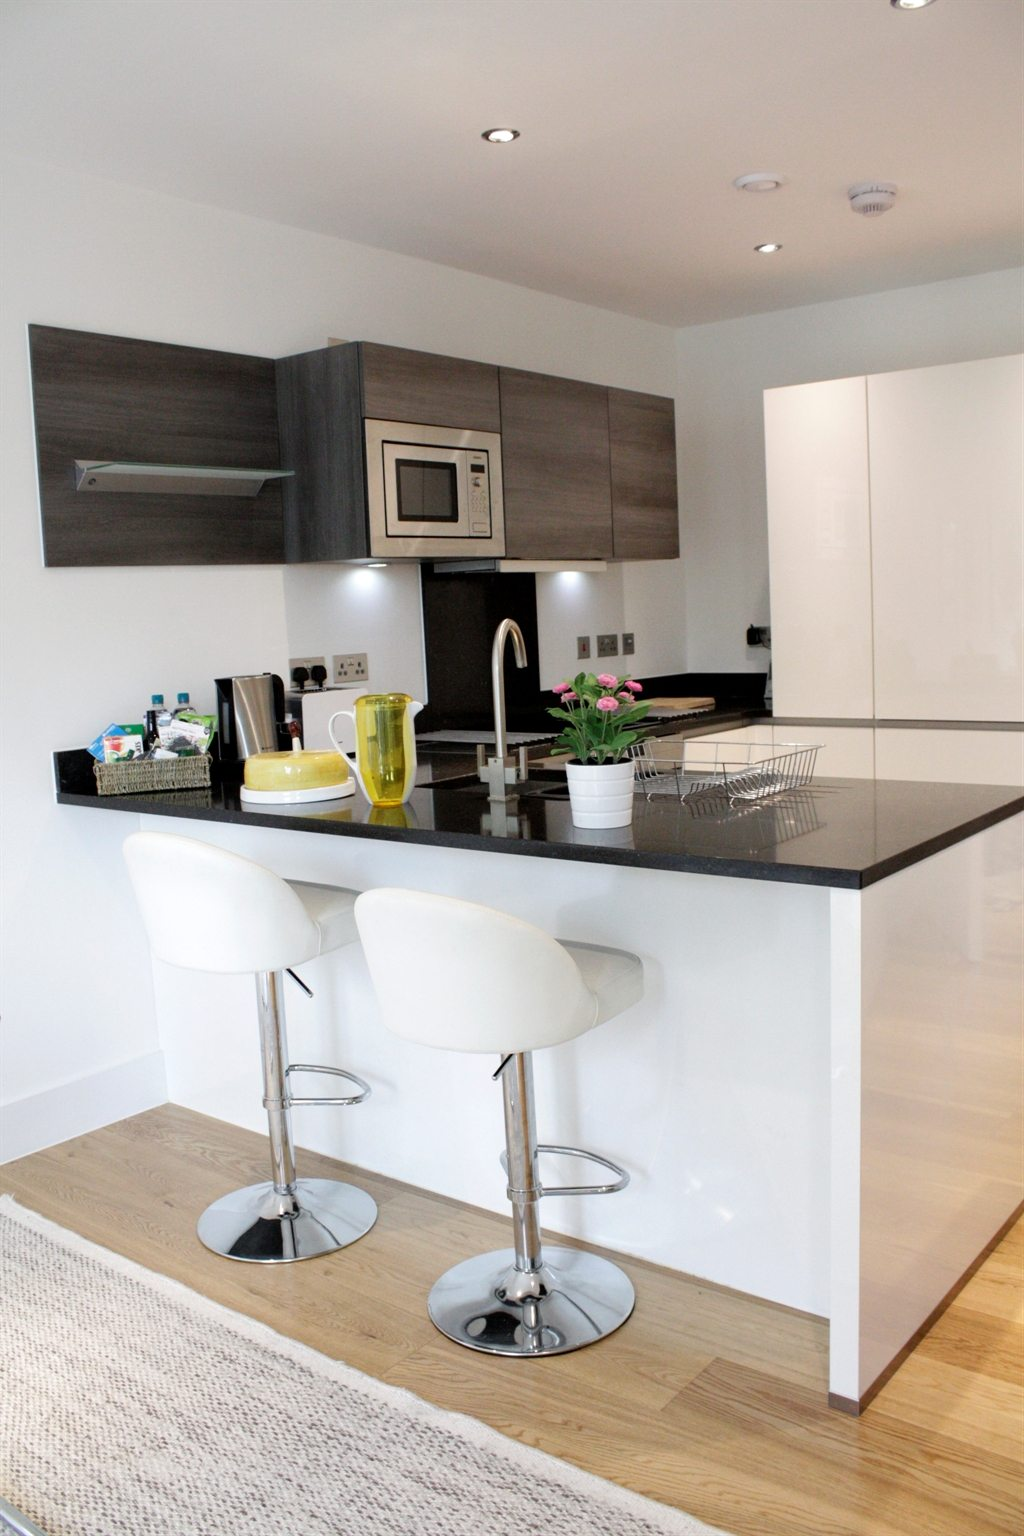 Portobello-Road-Serviced-Apartments---Notting-Hill-London---Kitchen